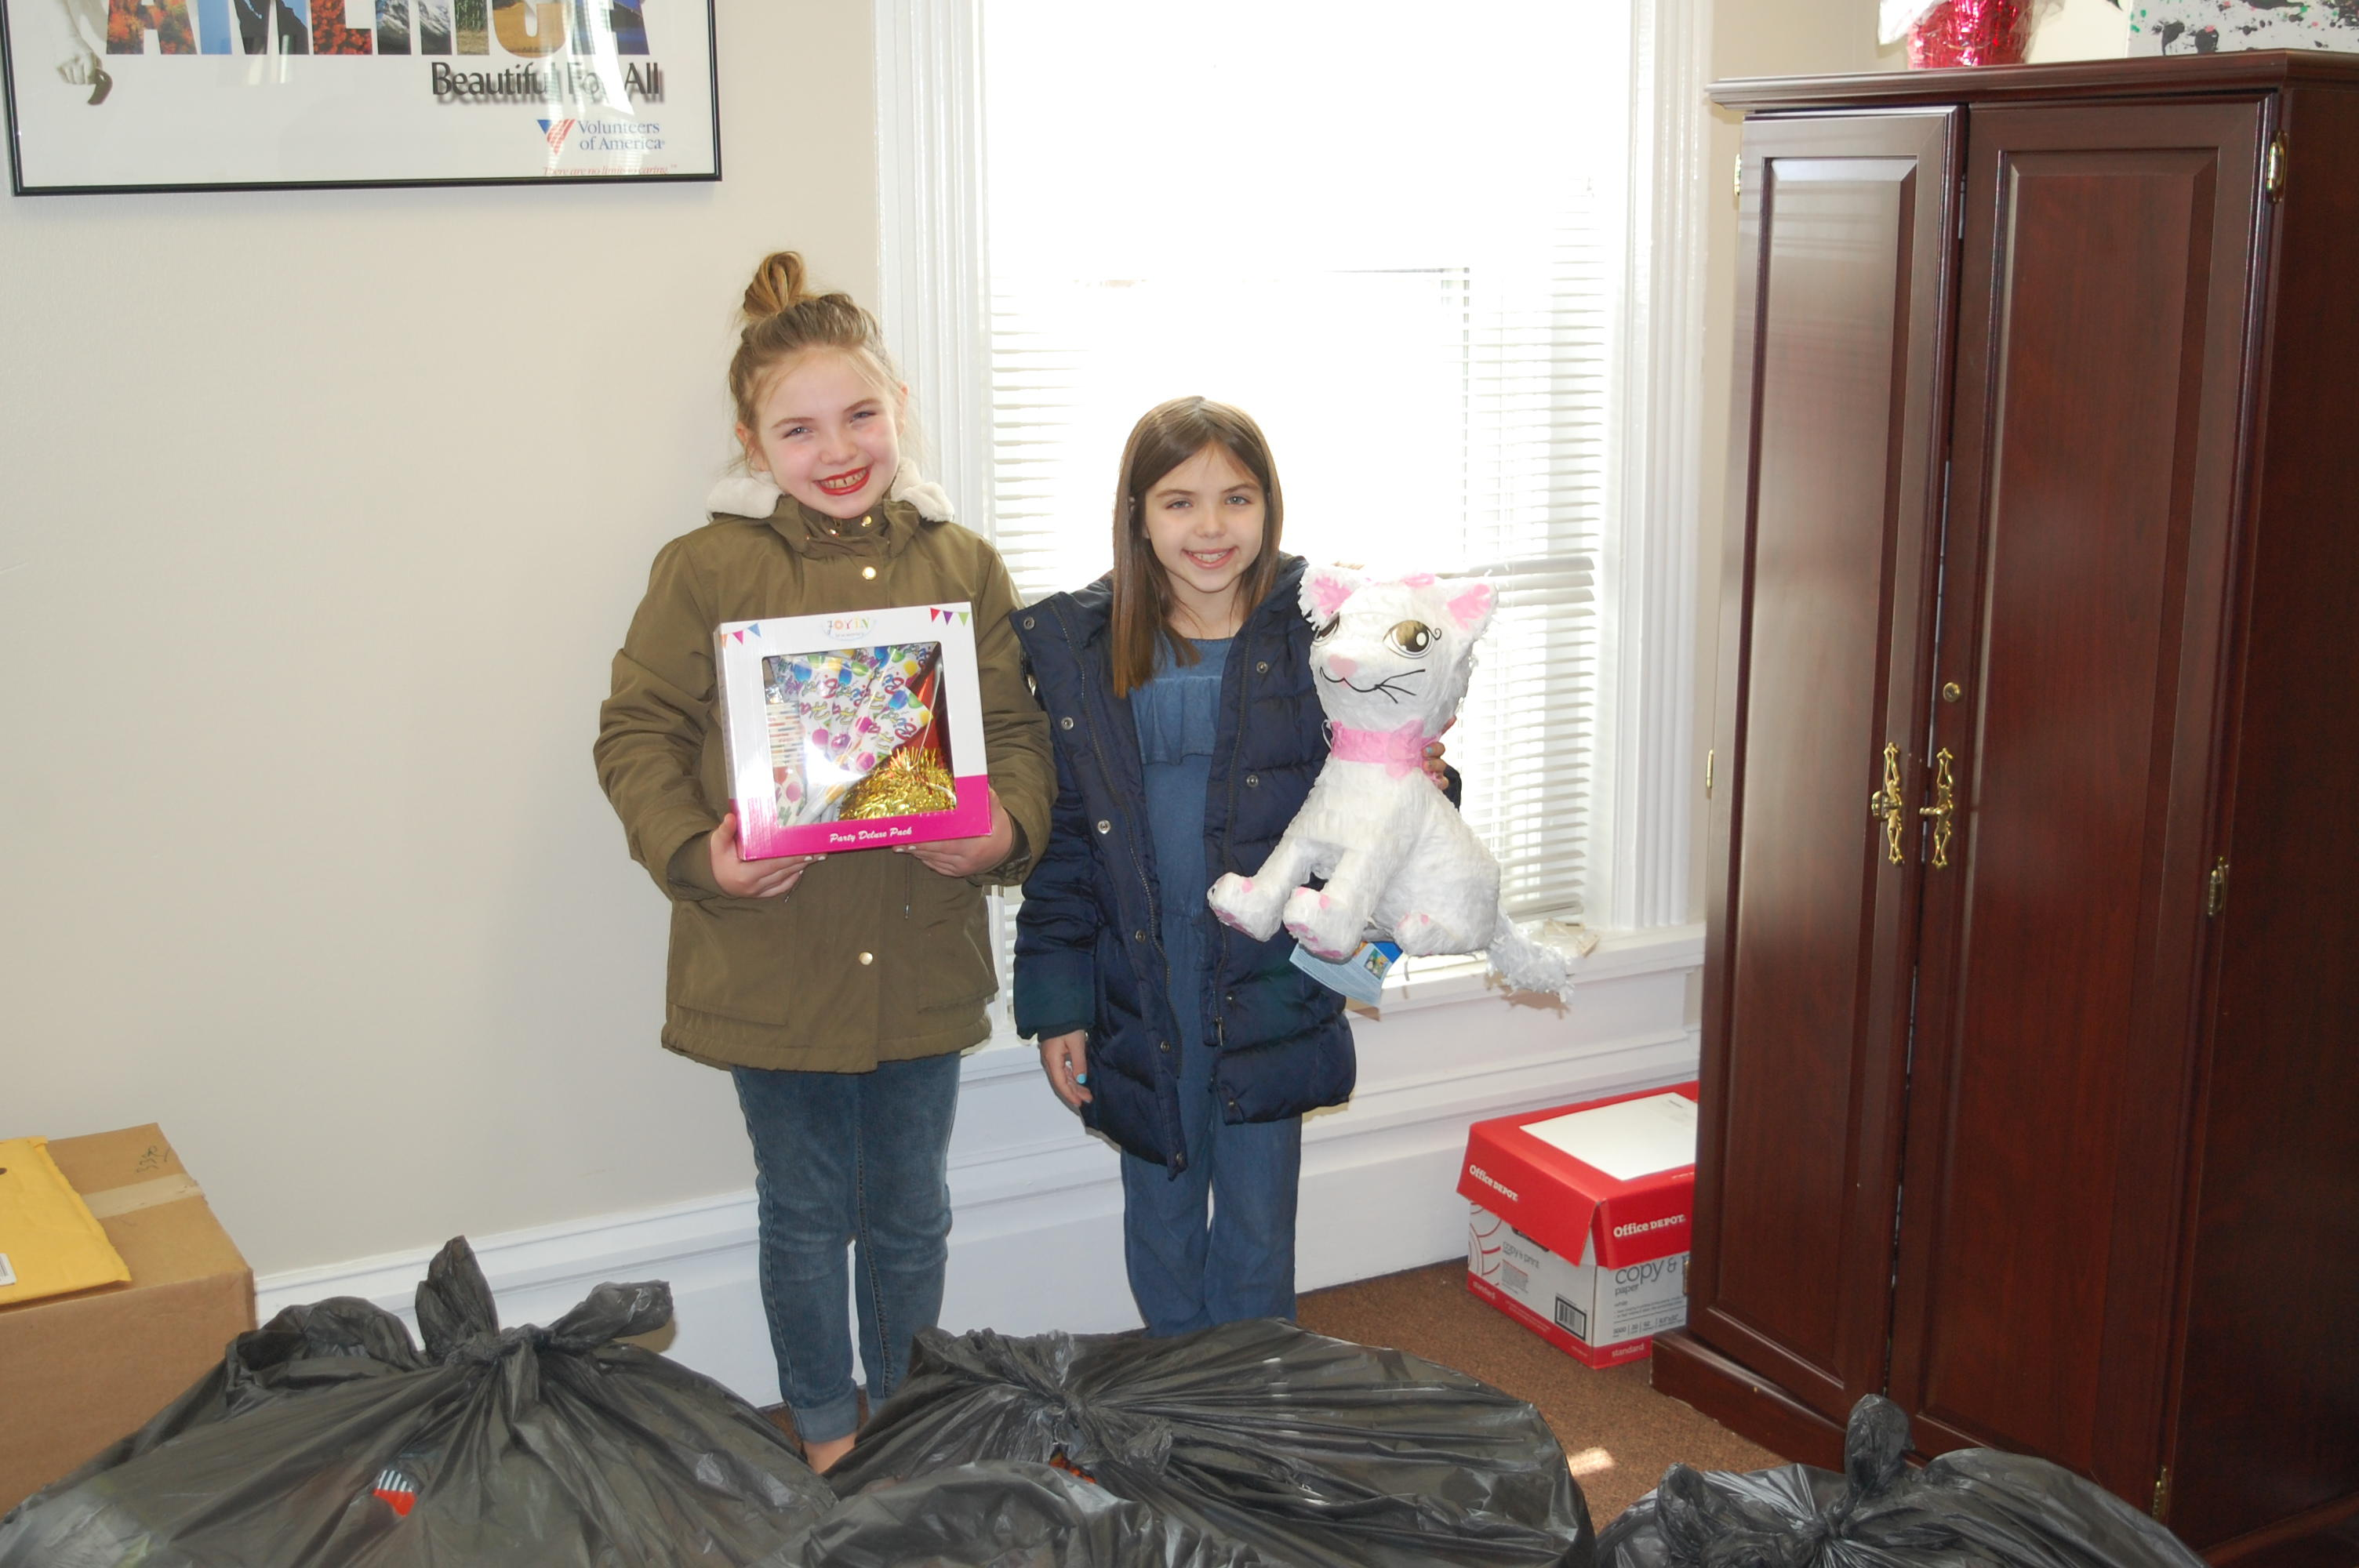 Columbus sisters give back to children in need by donating birthday party supplies.